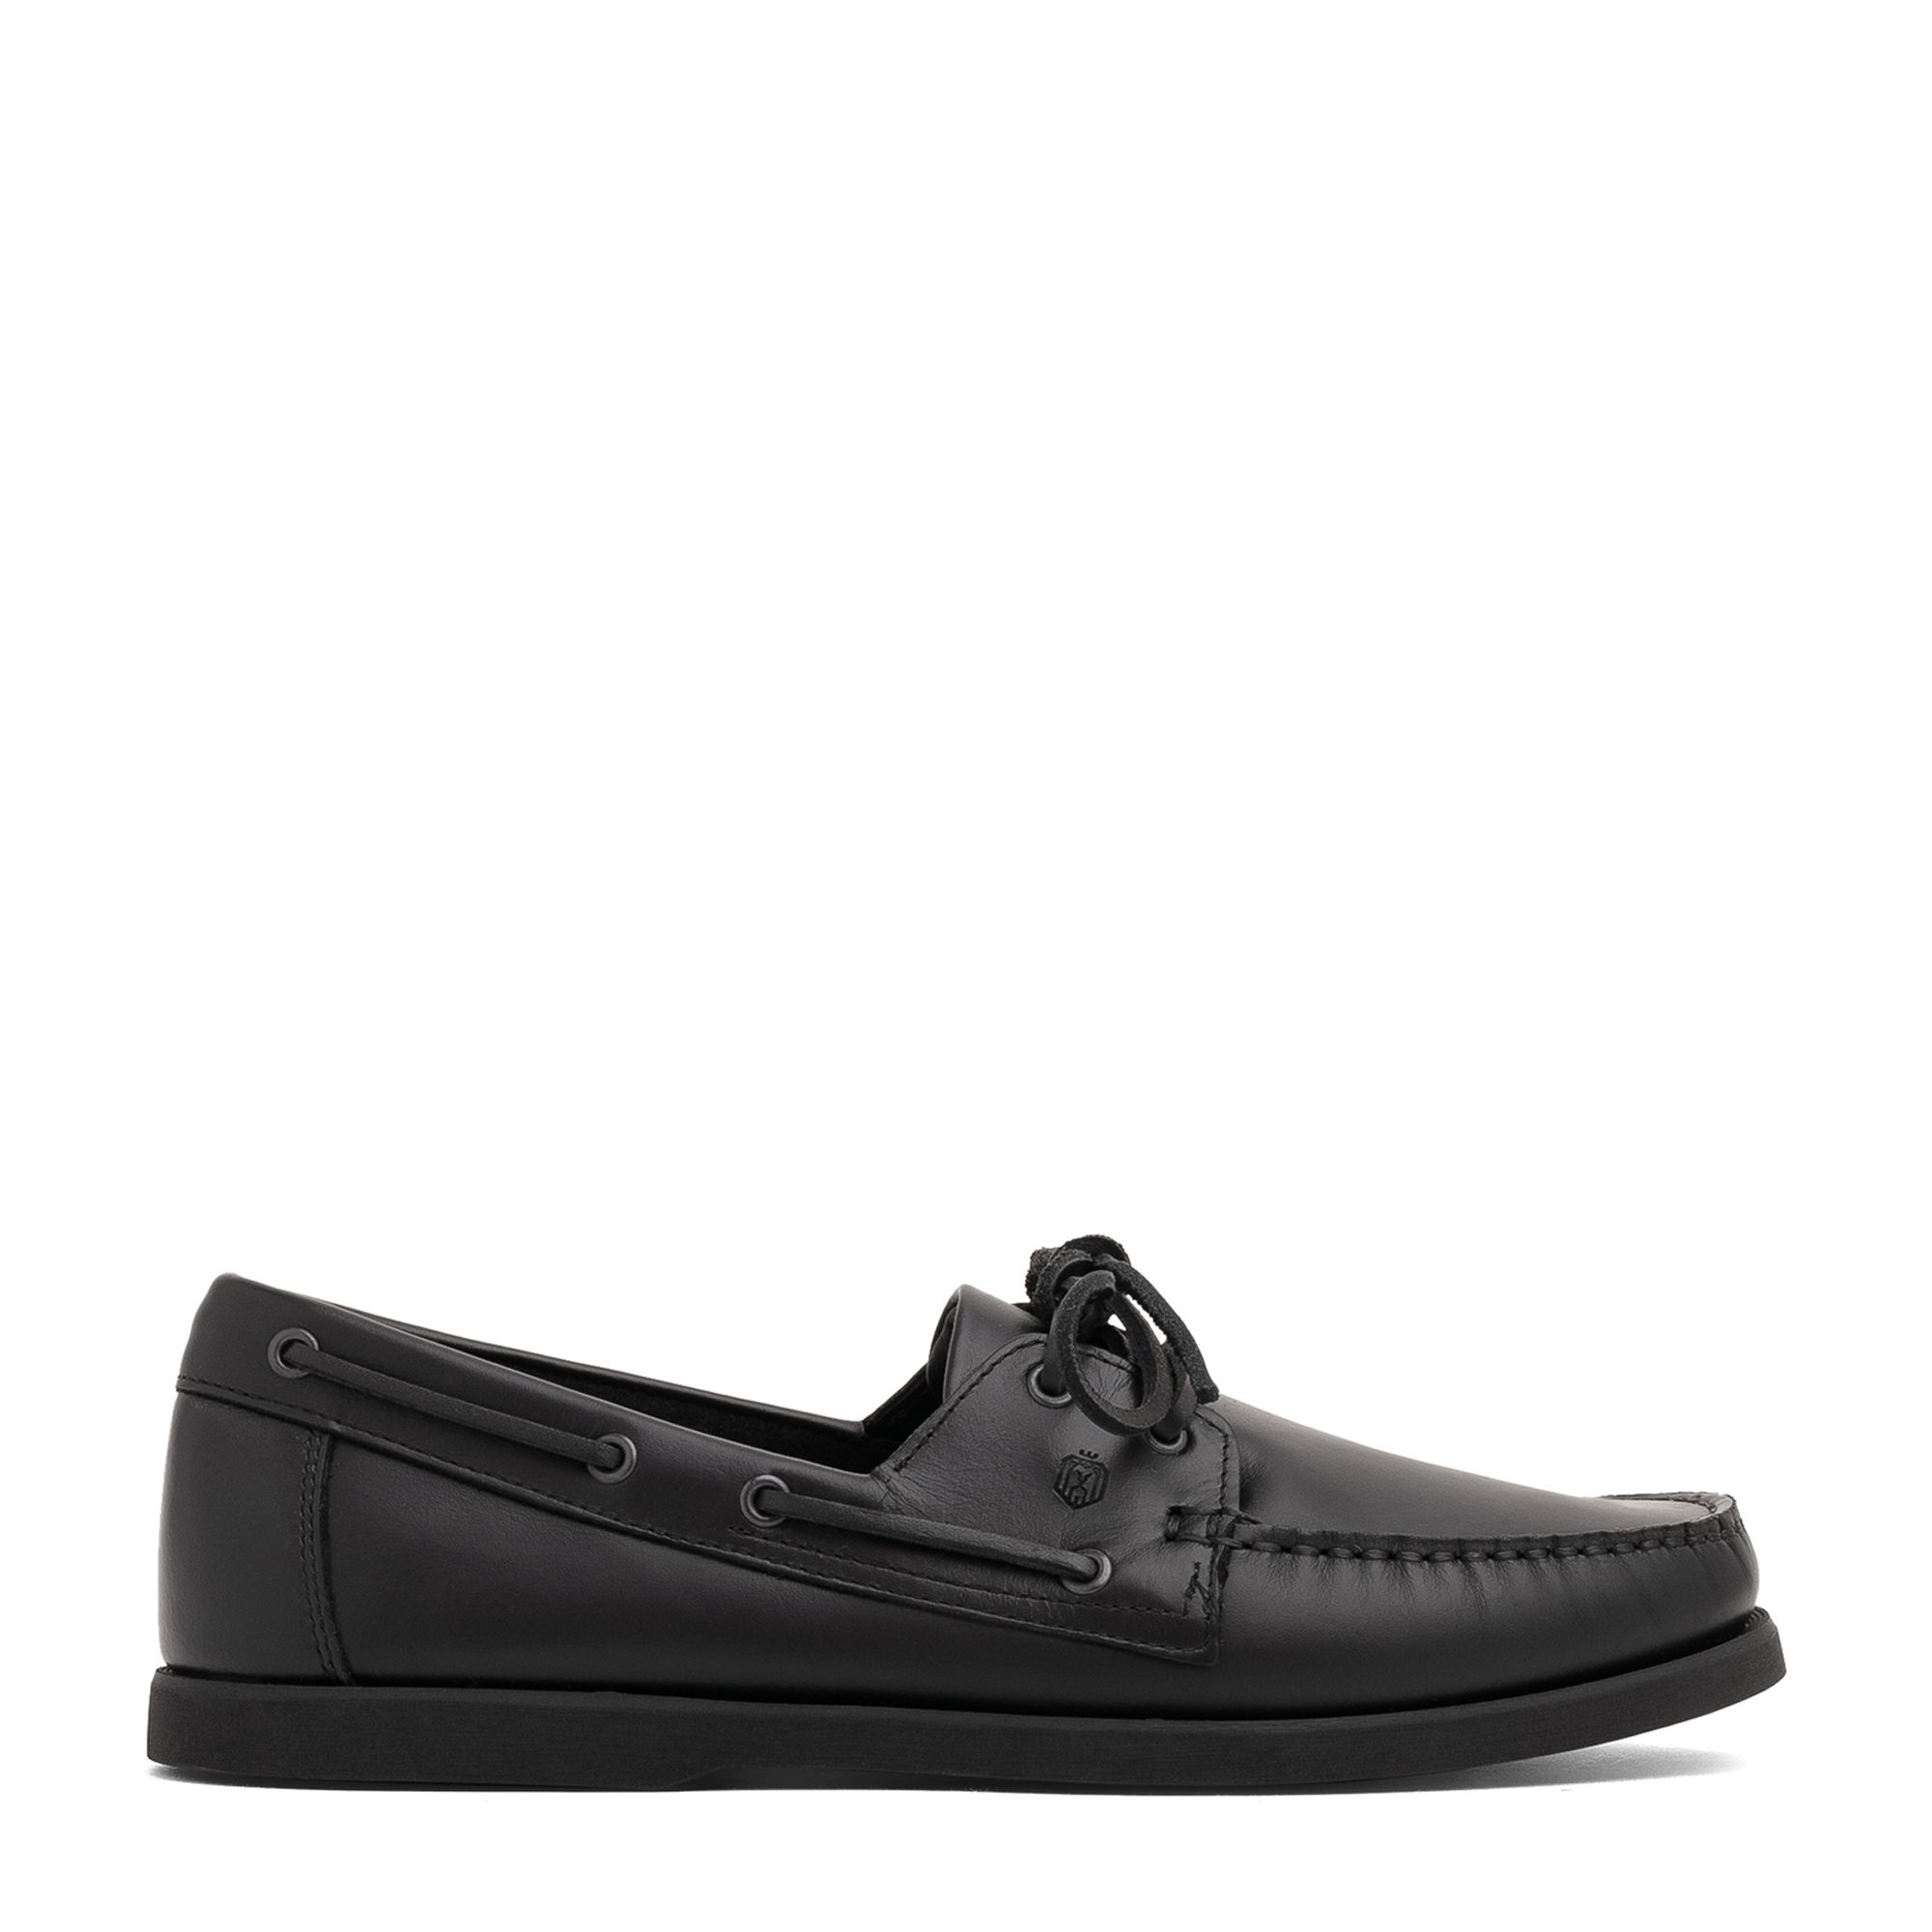 Dynamic leather boat shoes